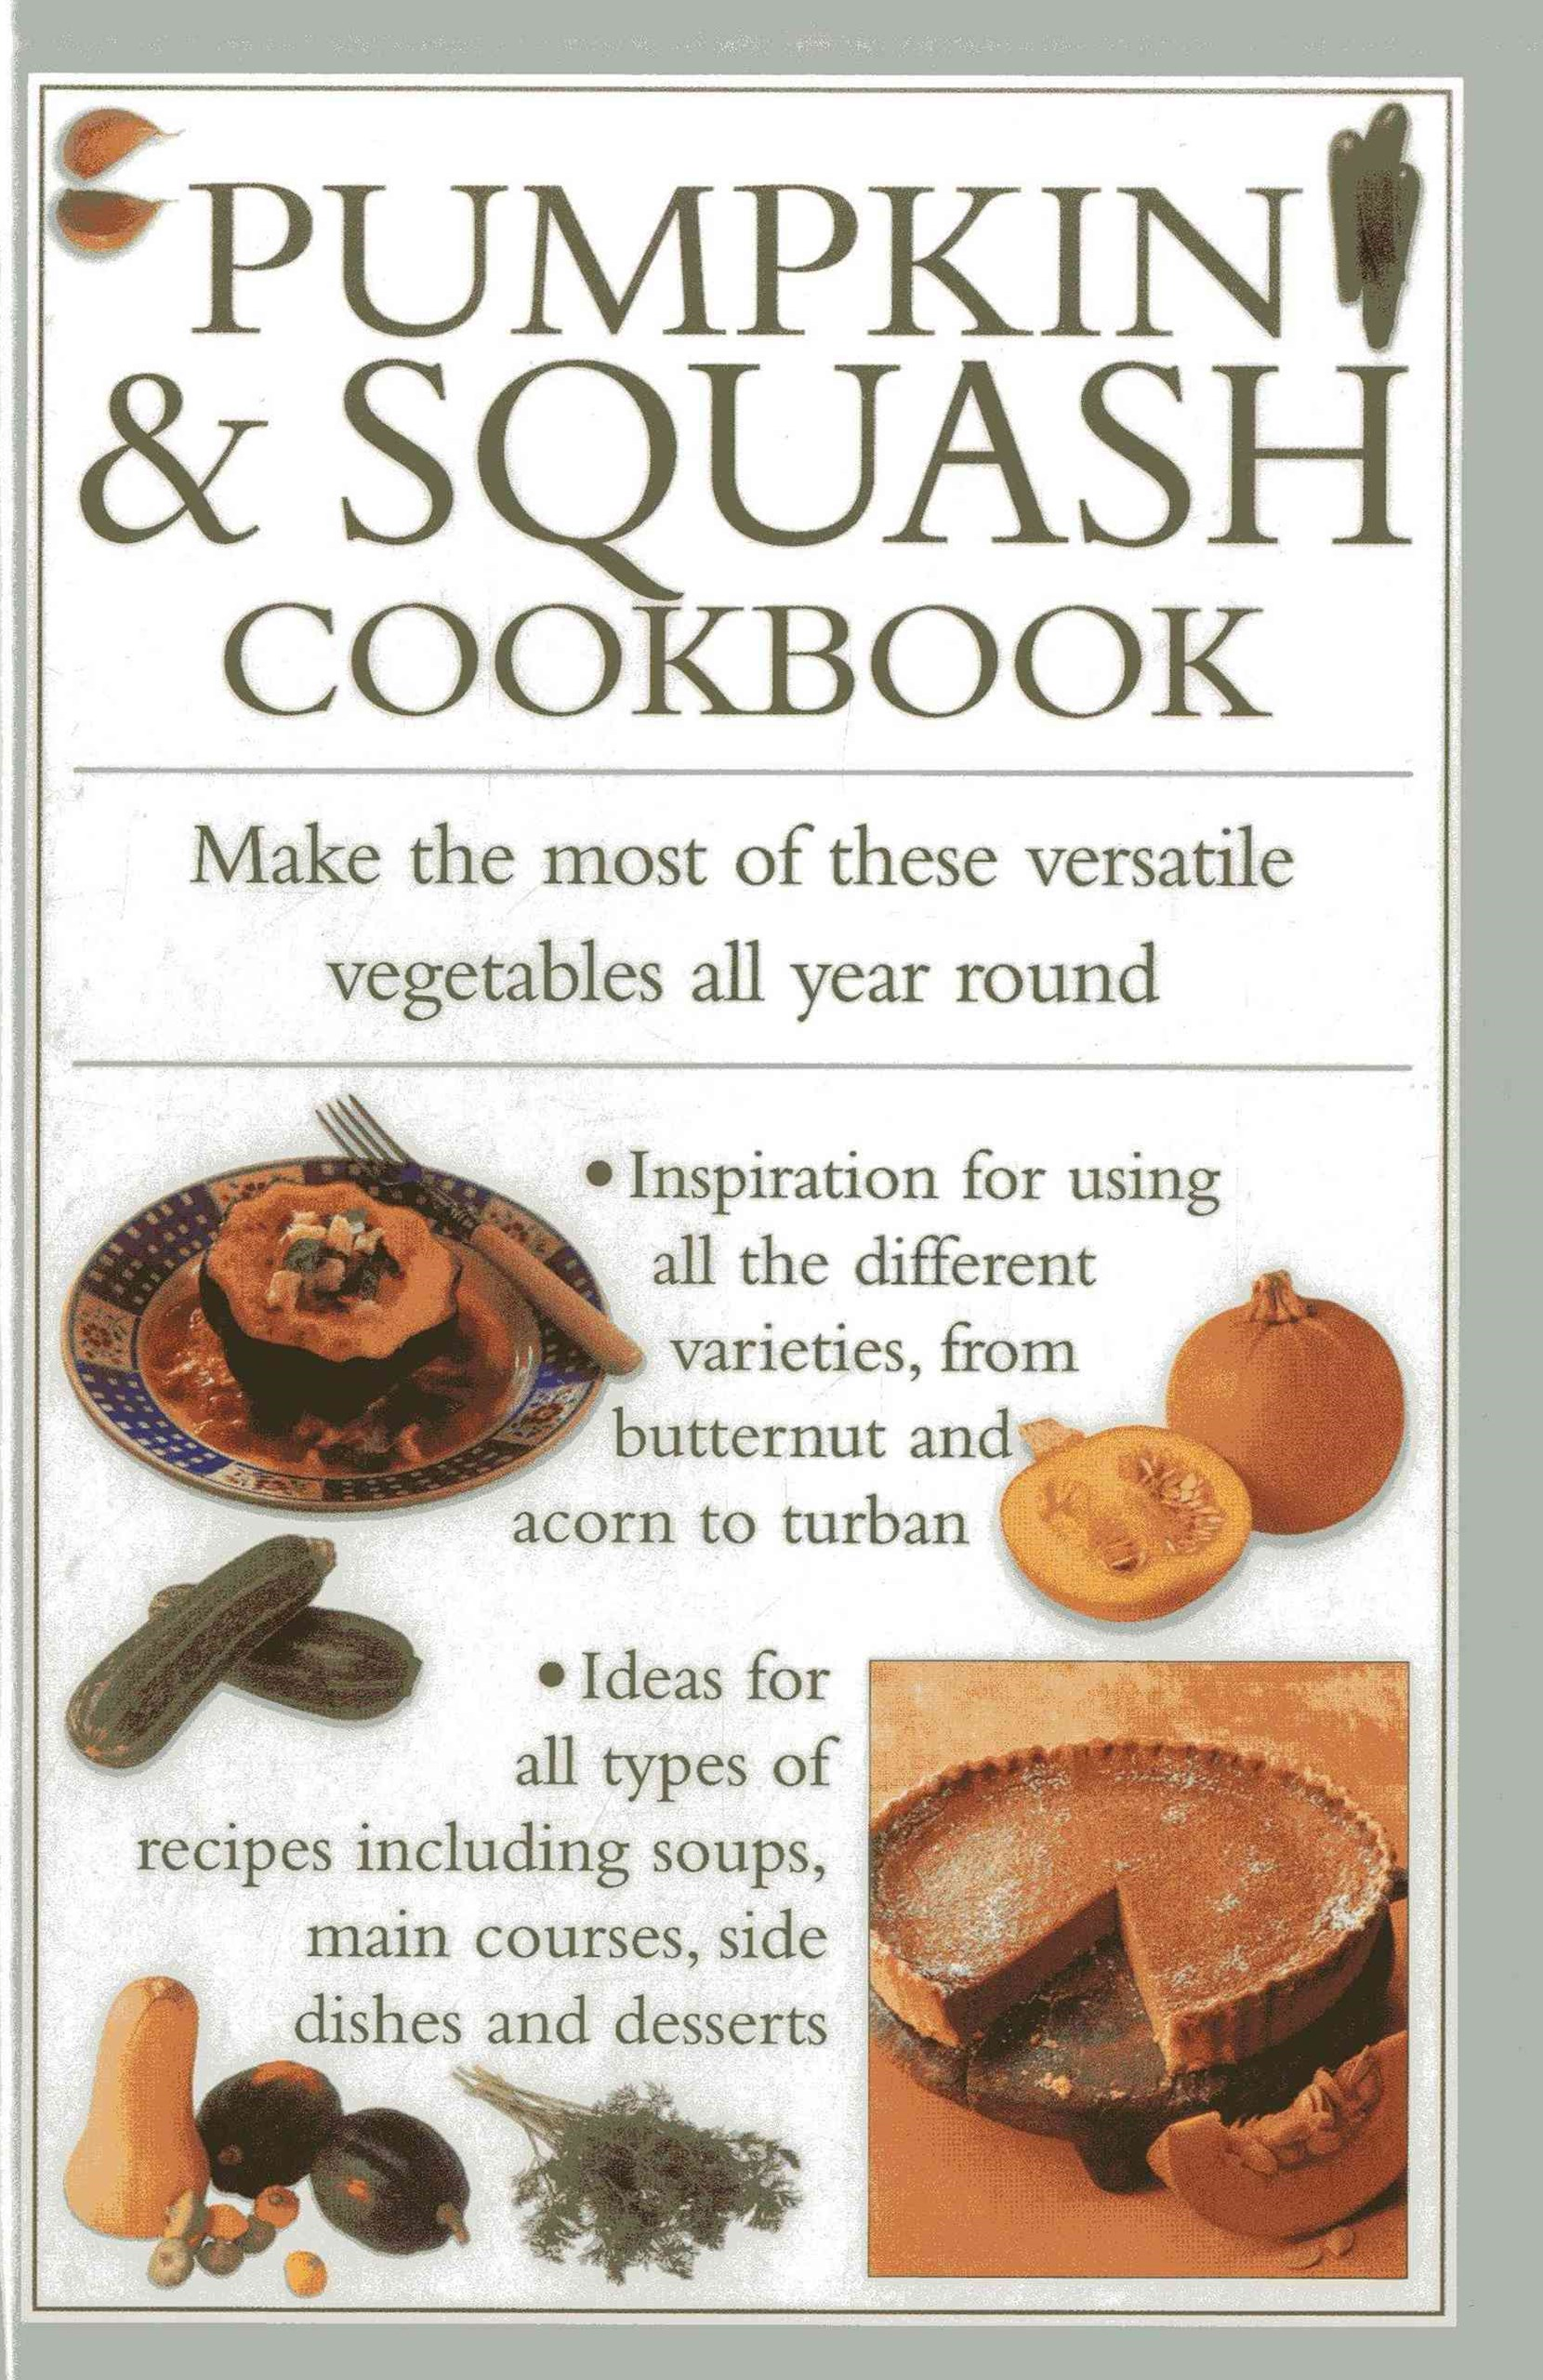 Pumpkin and Squash Cookbook